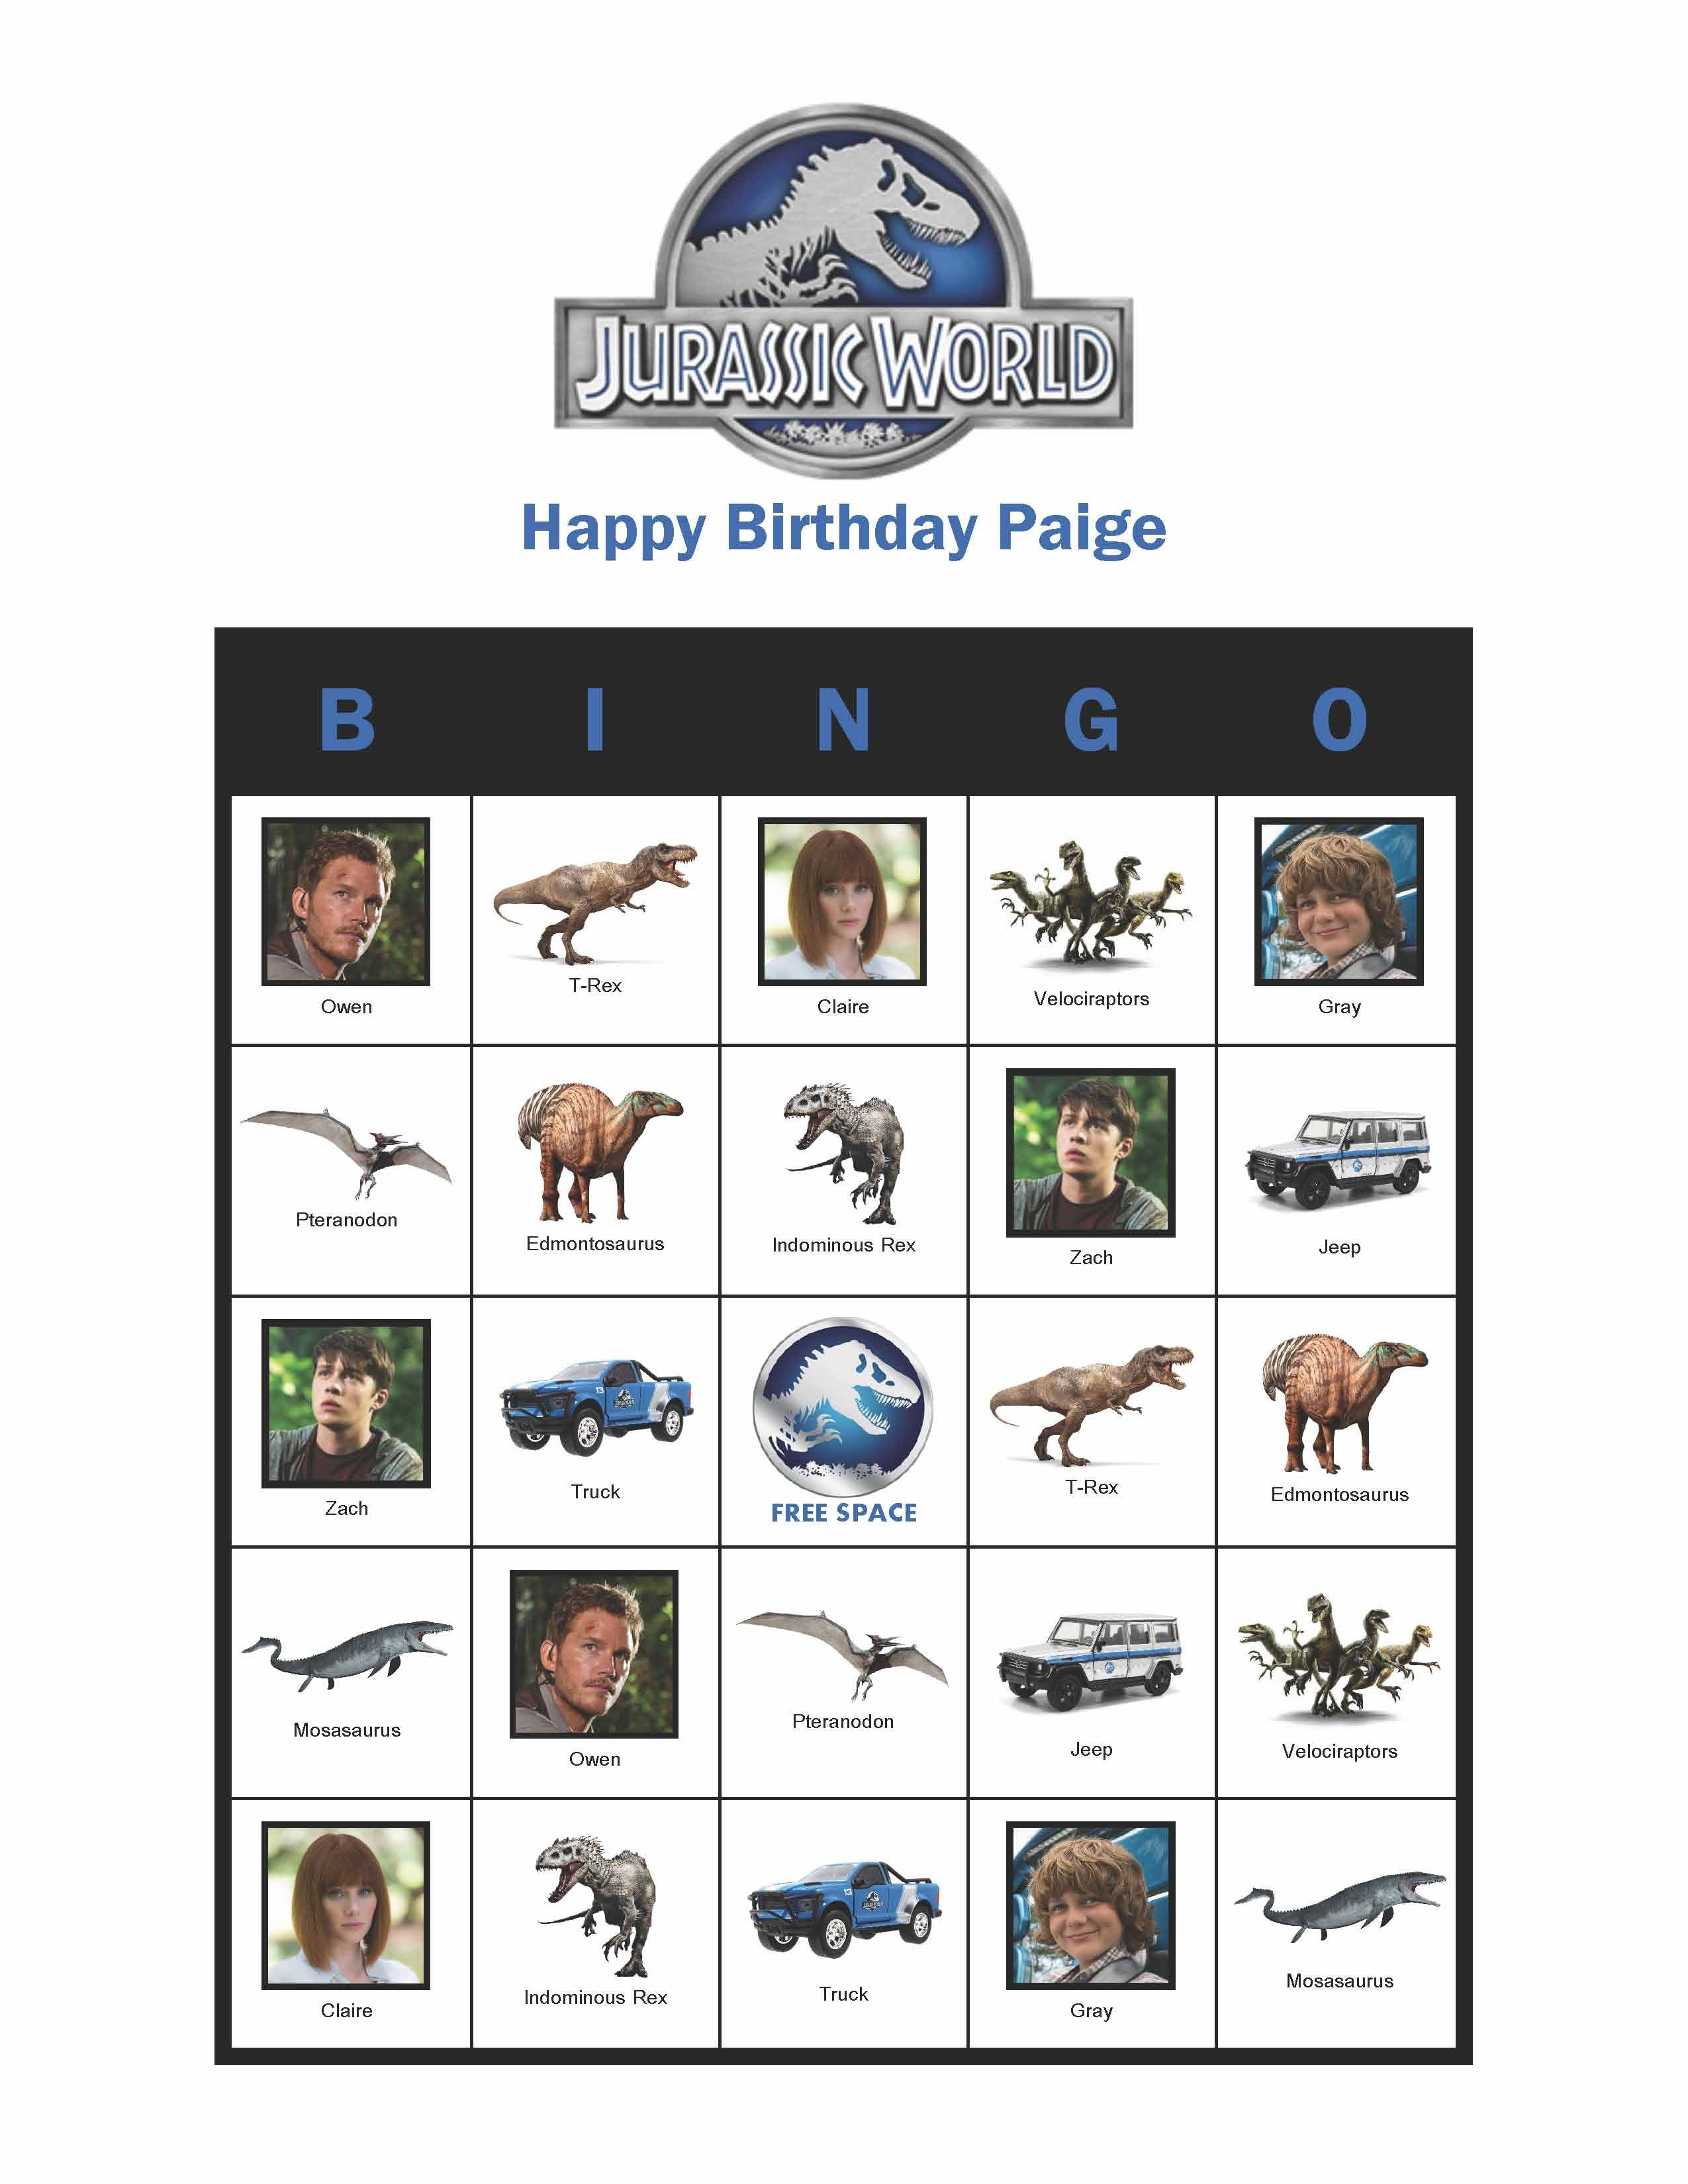 Jurassic World Personalized Birthday Bingo Cards Delivered By Email